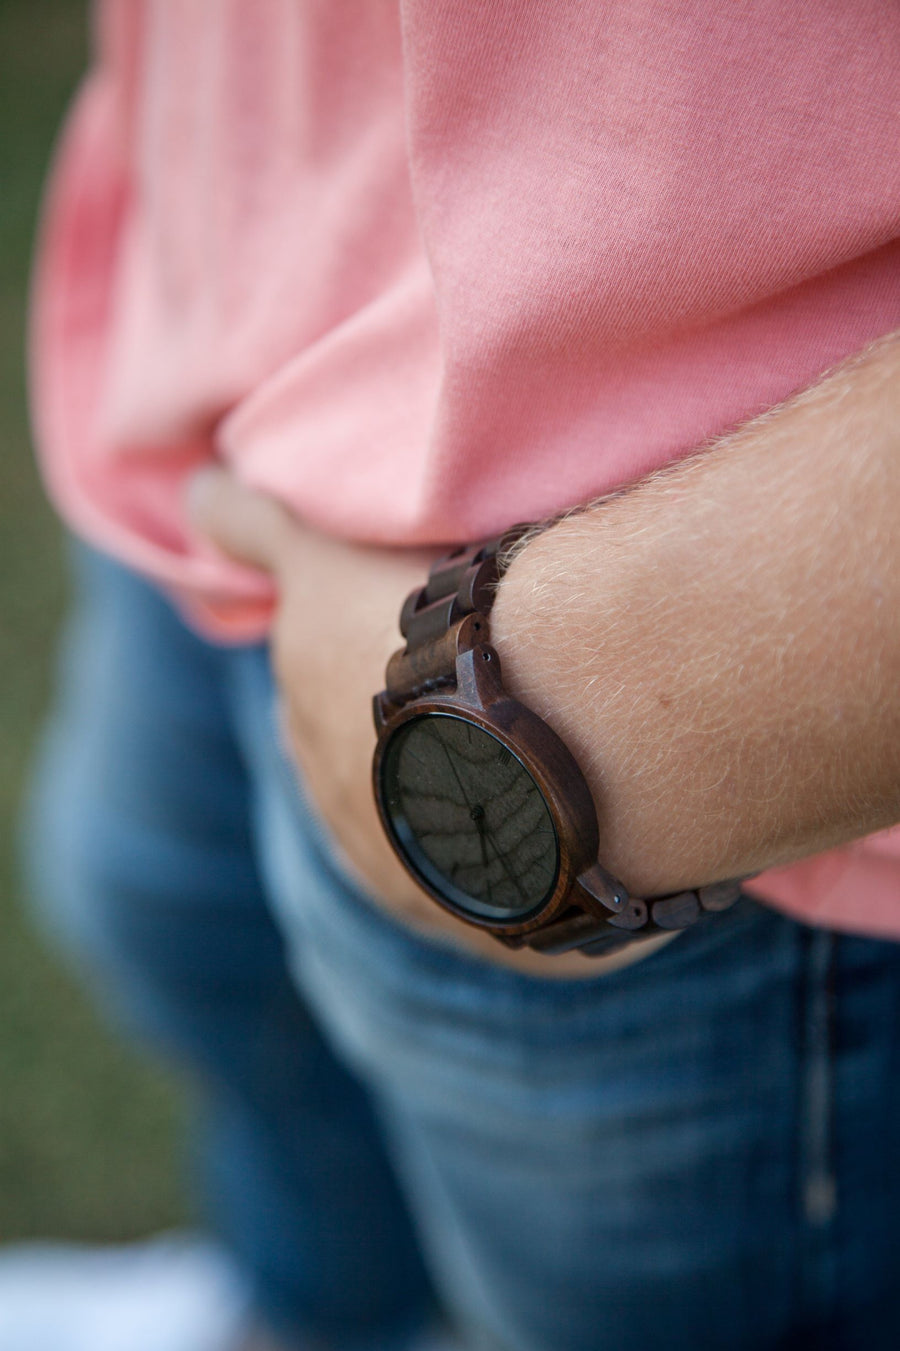 The Cedric Ebony | Wood Watches Wooden Band Watches Grain and Oak